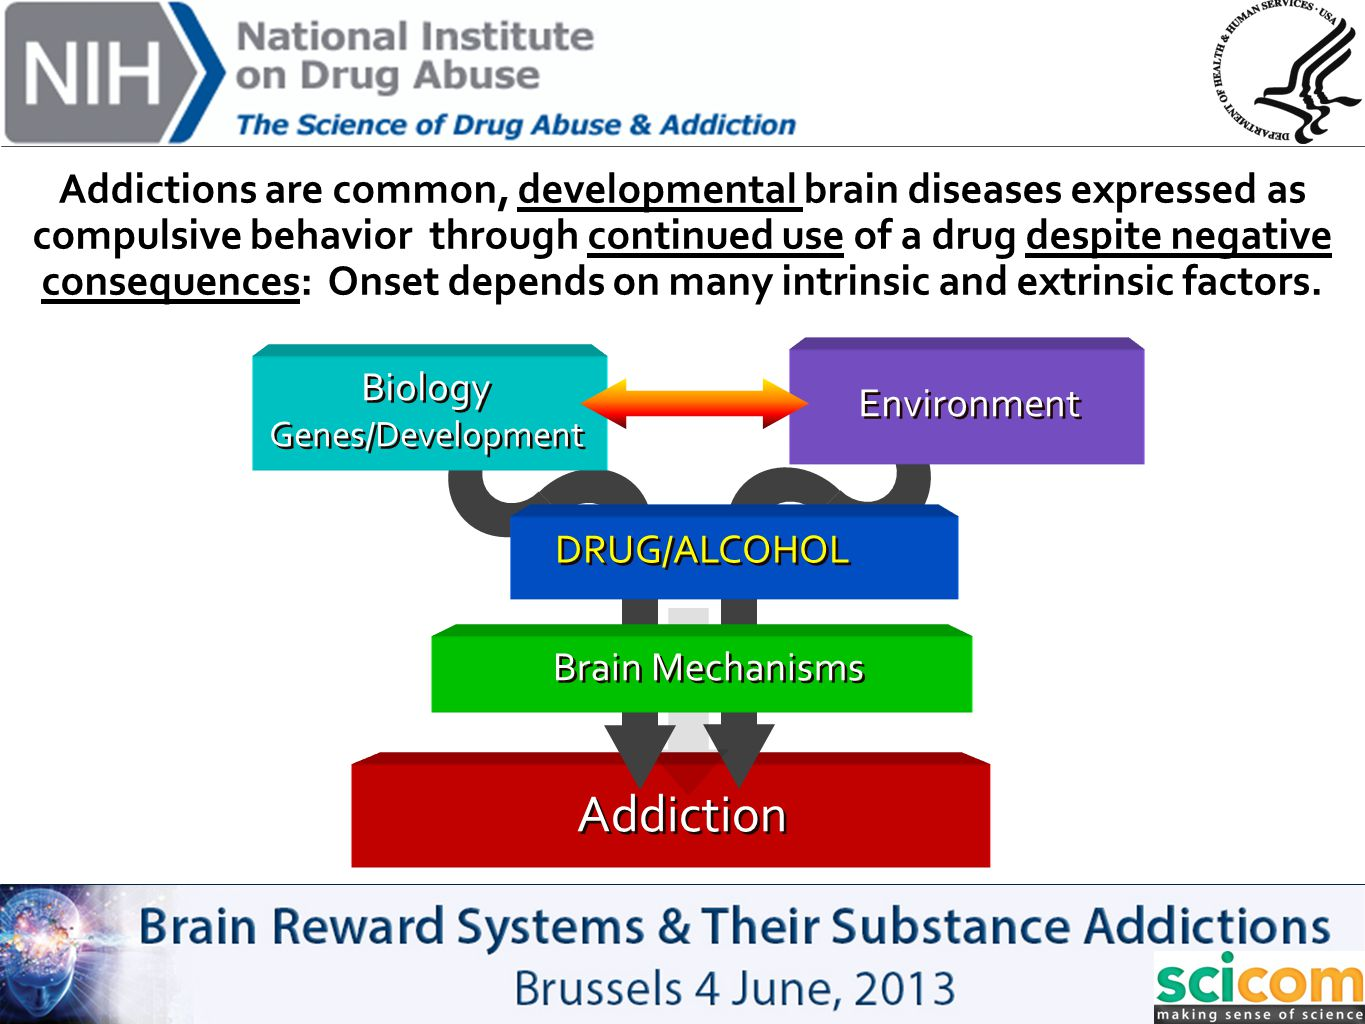 Addictions are common, developmental brain diseases expressed as compulsive behavior through continued use of a drug despite negative consequences: Onset depends on many intrinsic and extrinsic factors.